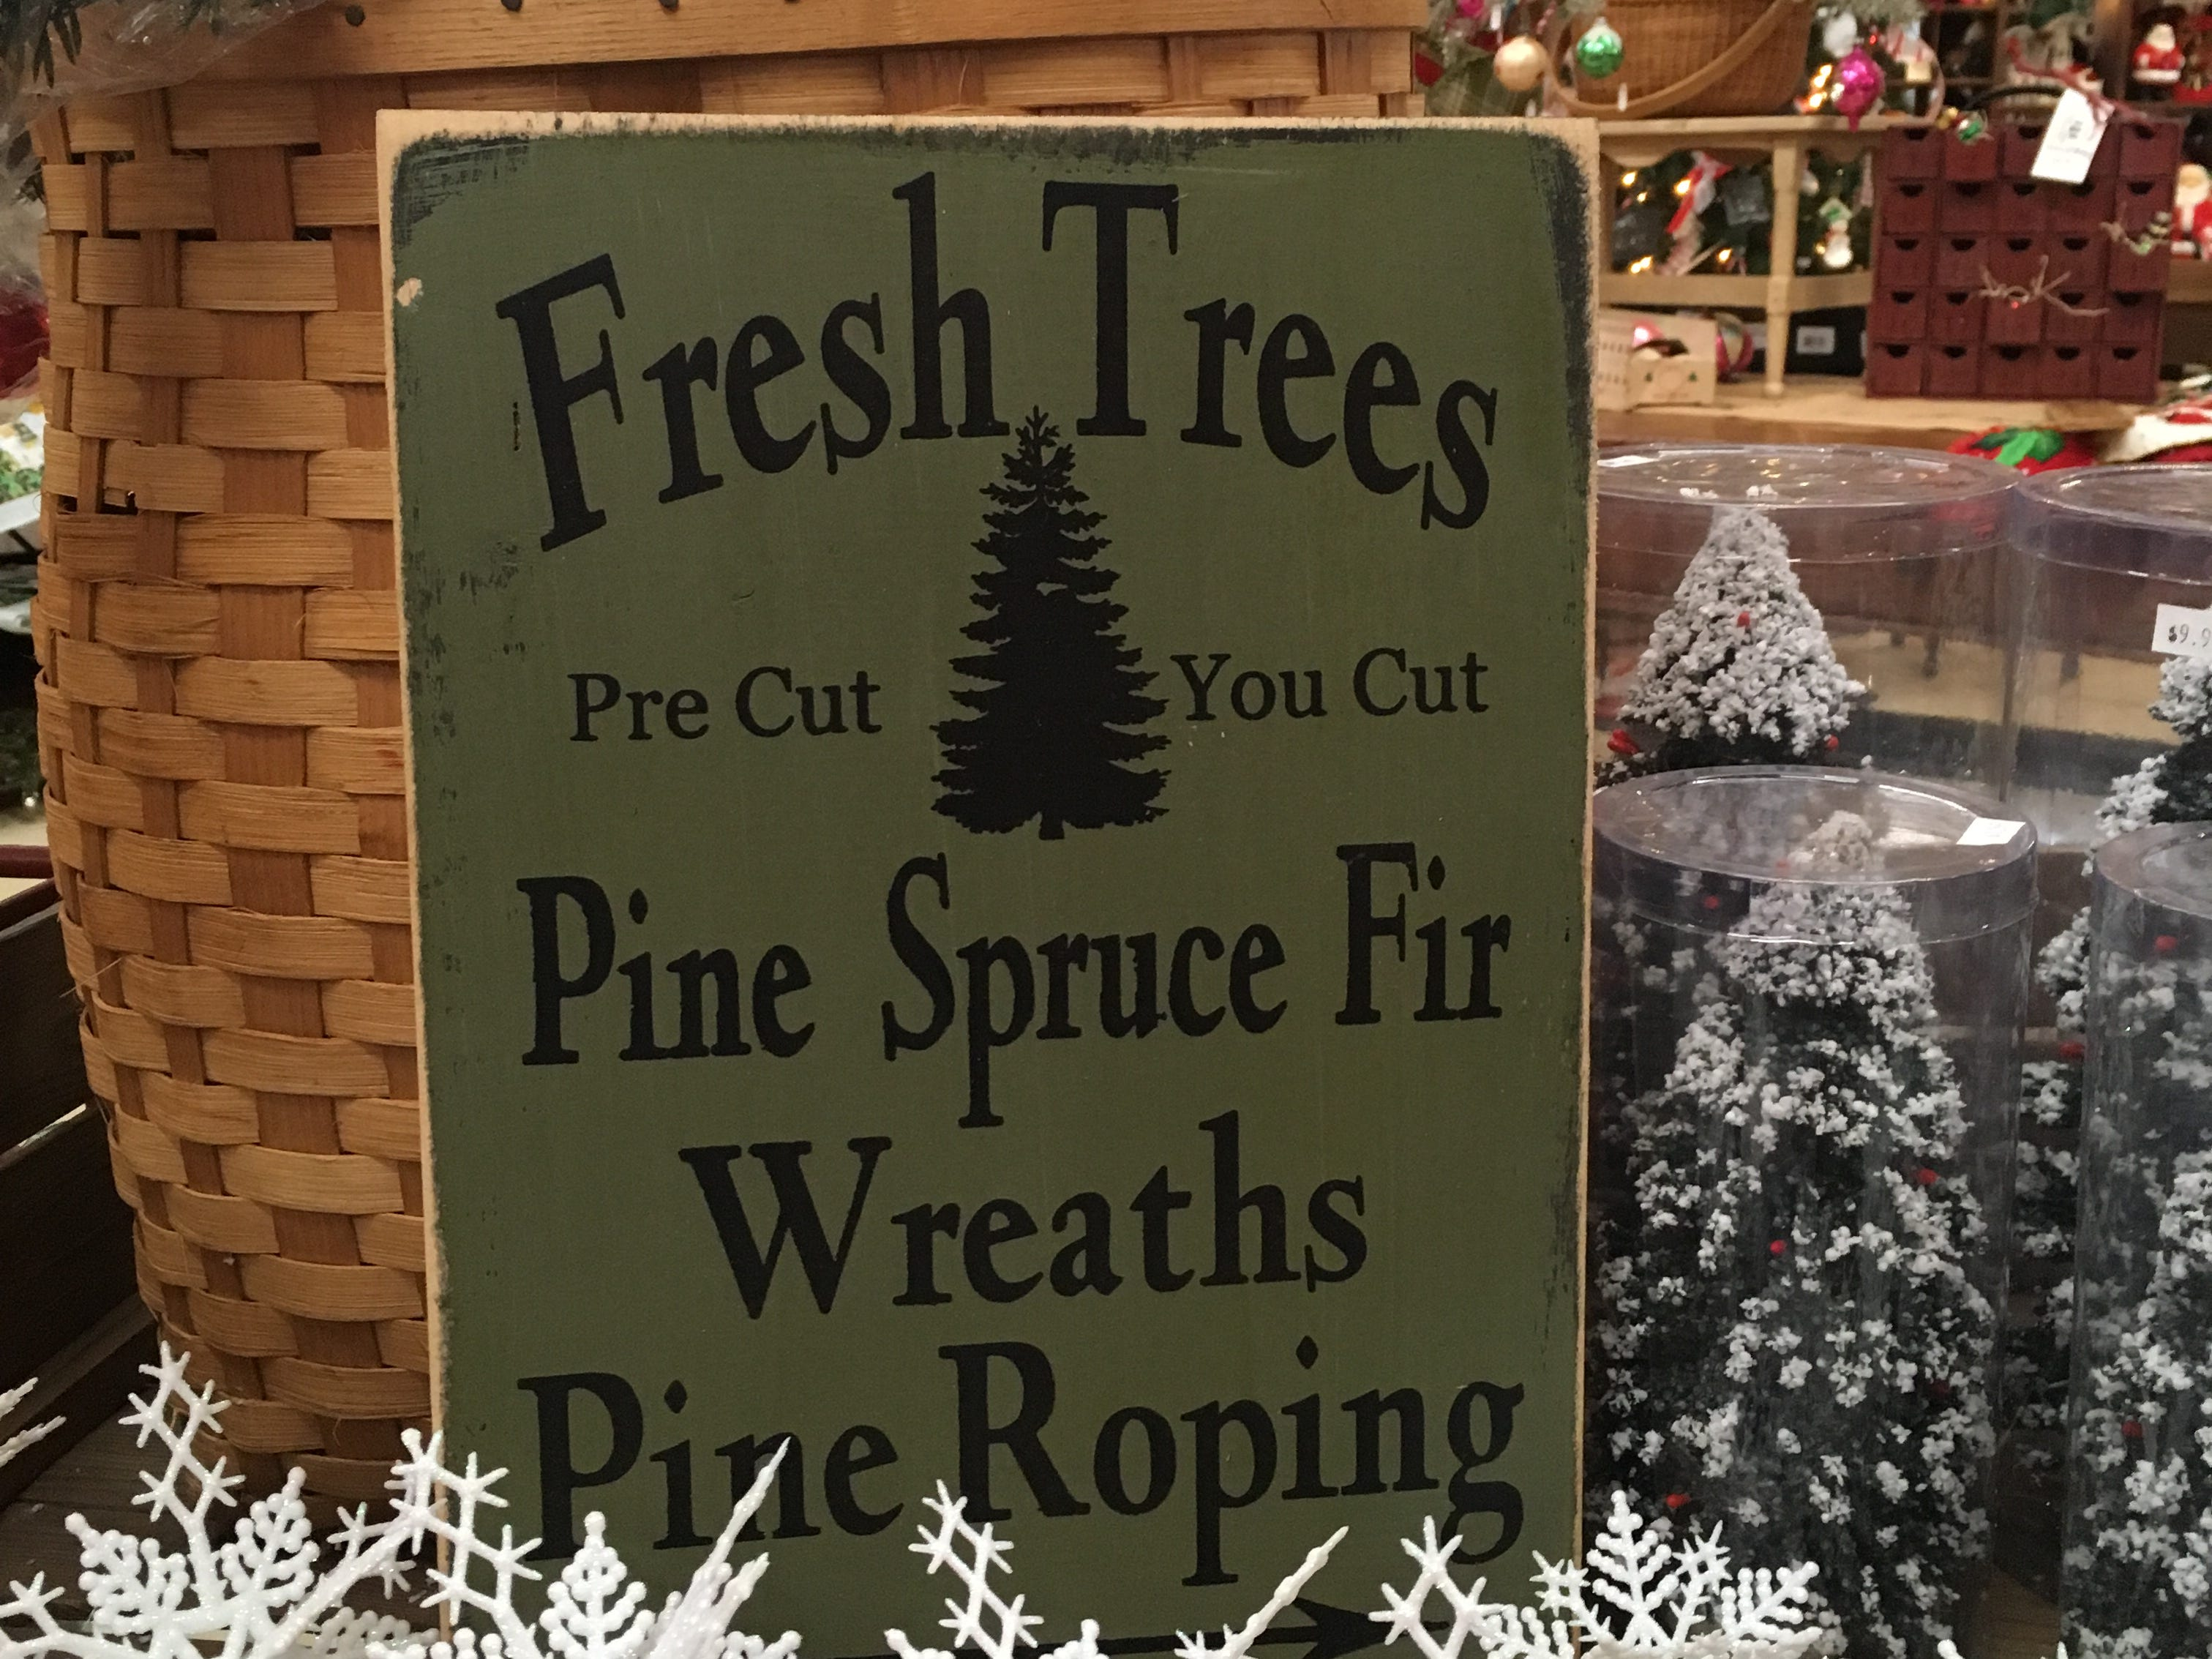 Keris Tree Farm & Christmas Shop, 848 Route 524 (Stone Tavern Rd.), Allentown. Keris Farm has more than 1,000 trees of Blue Spruce, Norway Spruce, White Pine, Douglas Fir and Concolor Fir. They are also well-known for their Christmas tree shop and its wide array of holiday ornaments and decorations.